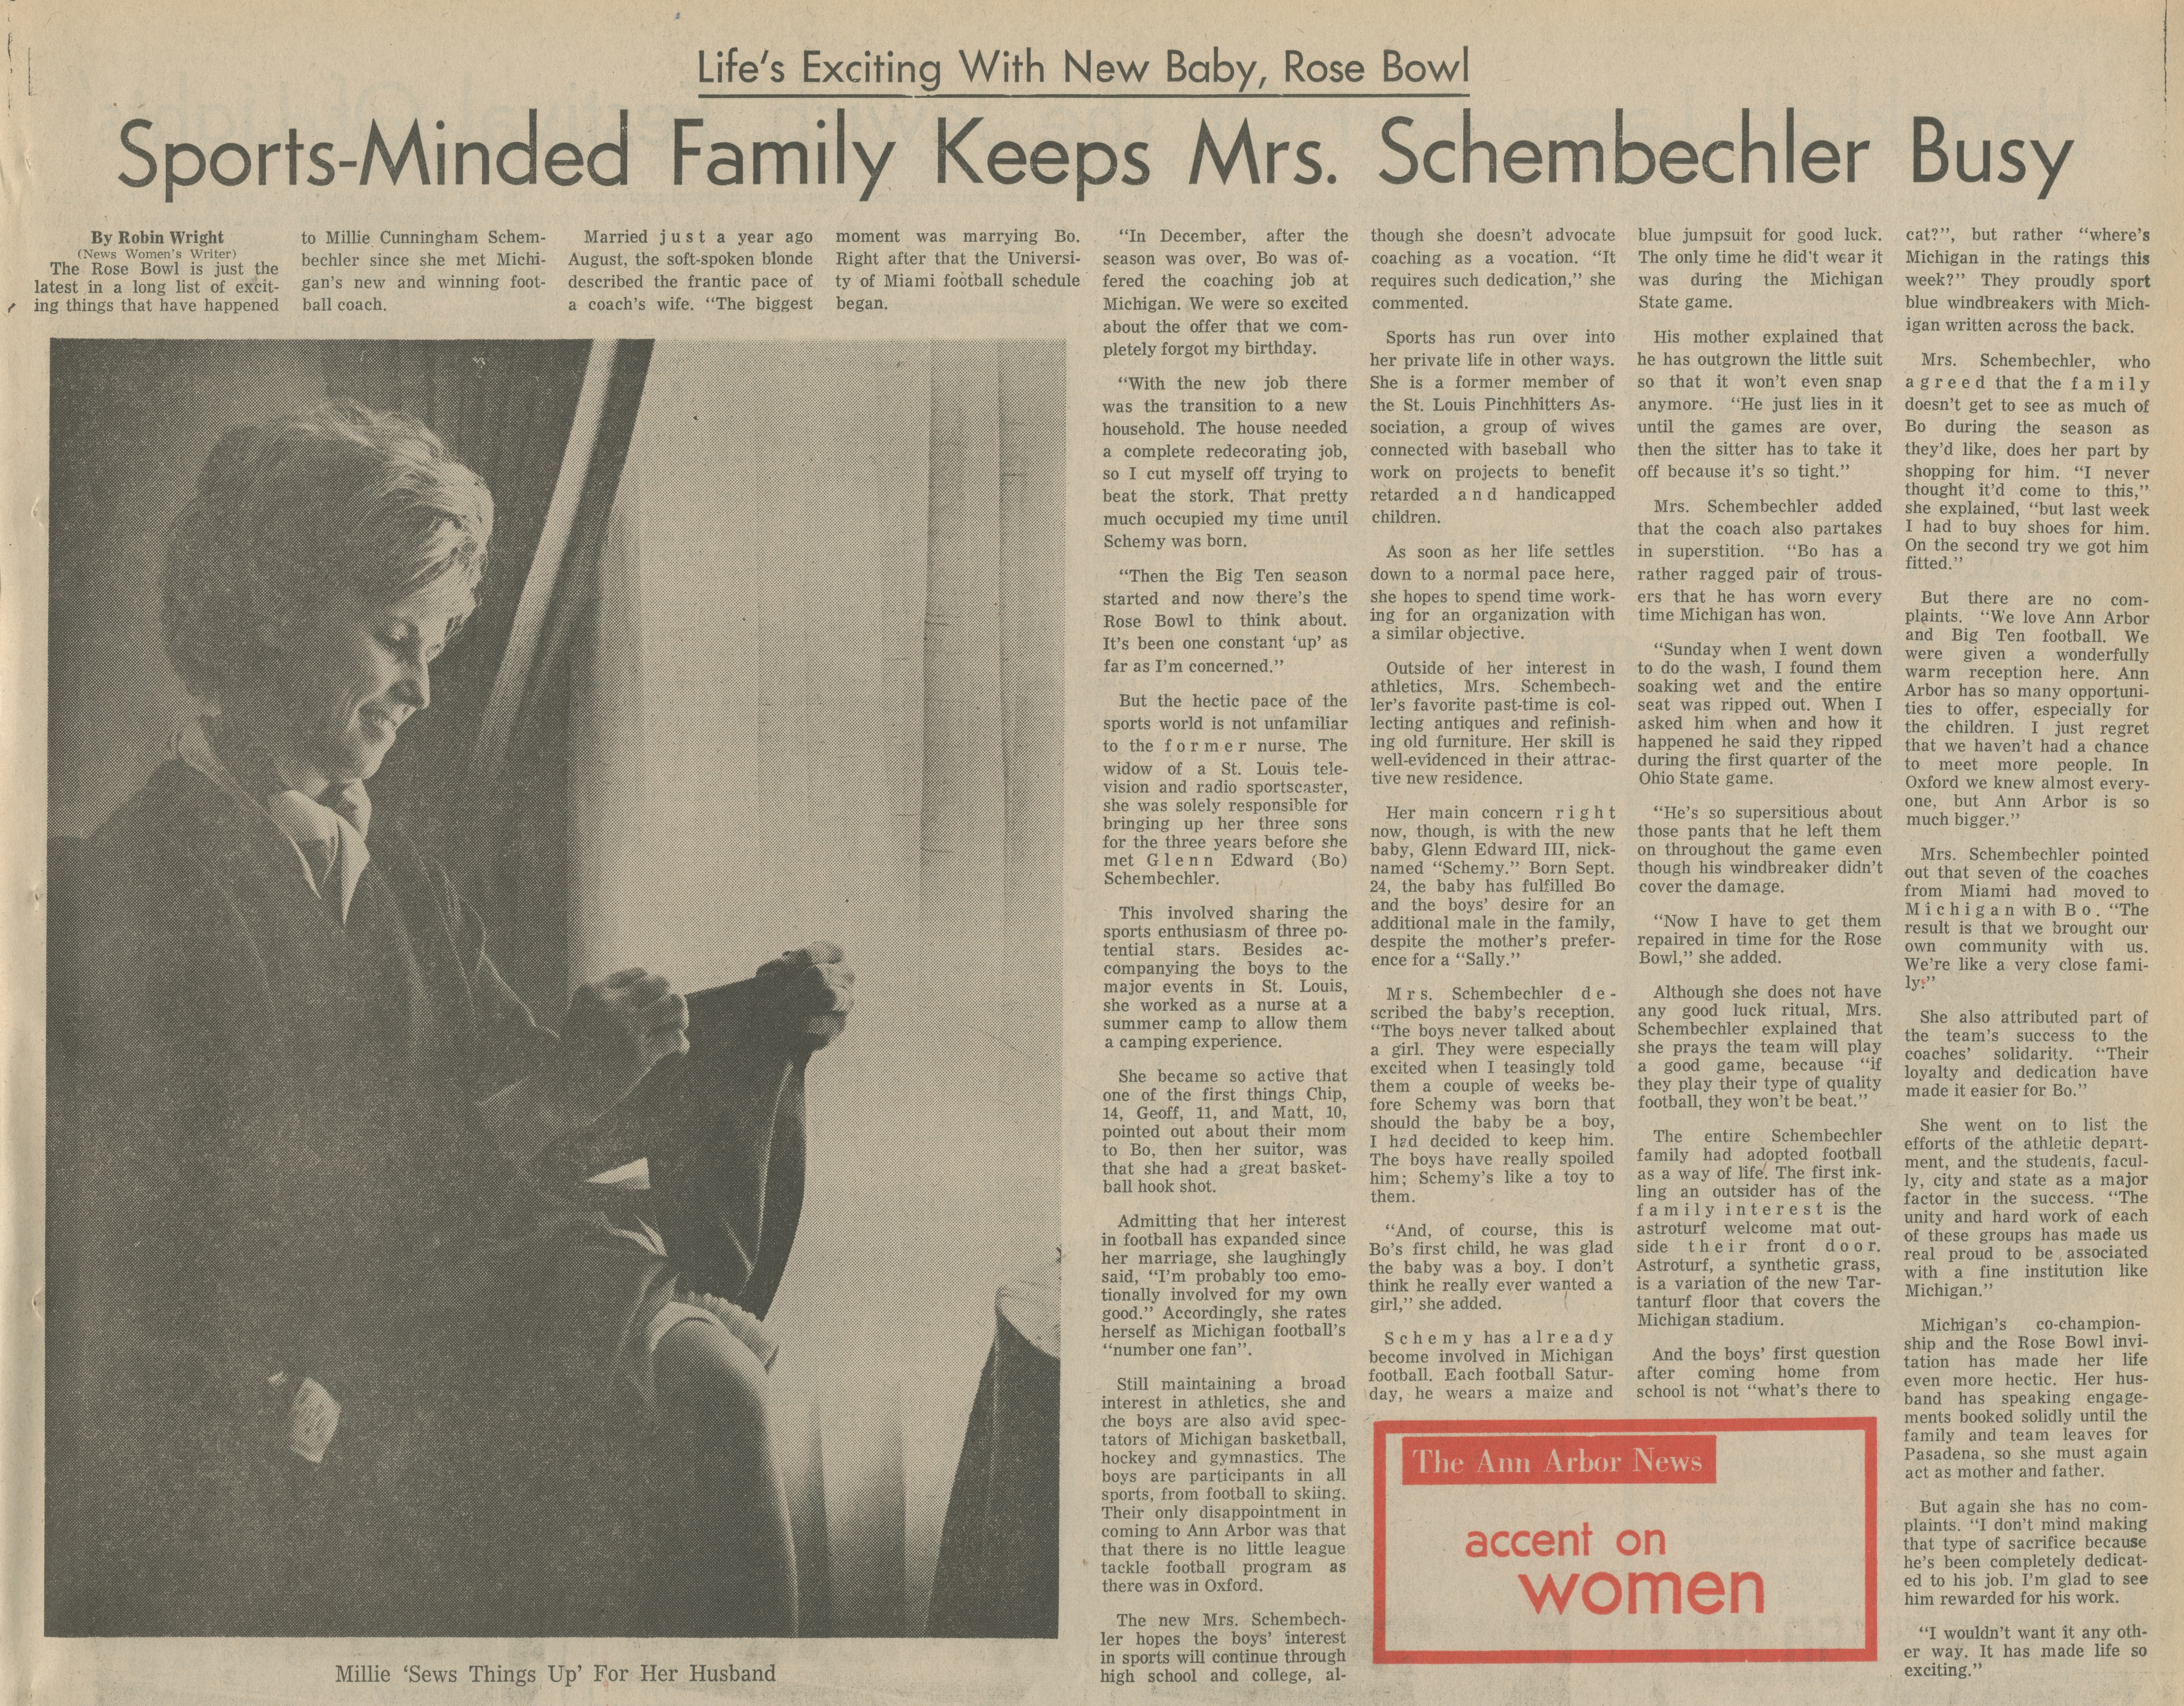 Sports-Minded Family Keeps Mrs. Schembechler Busy image